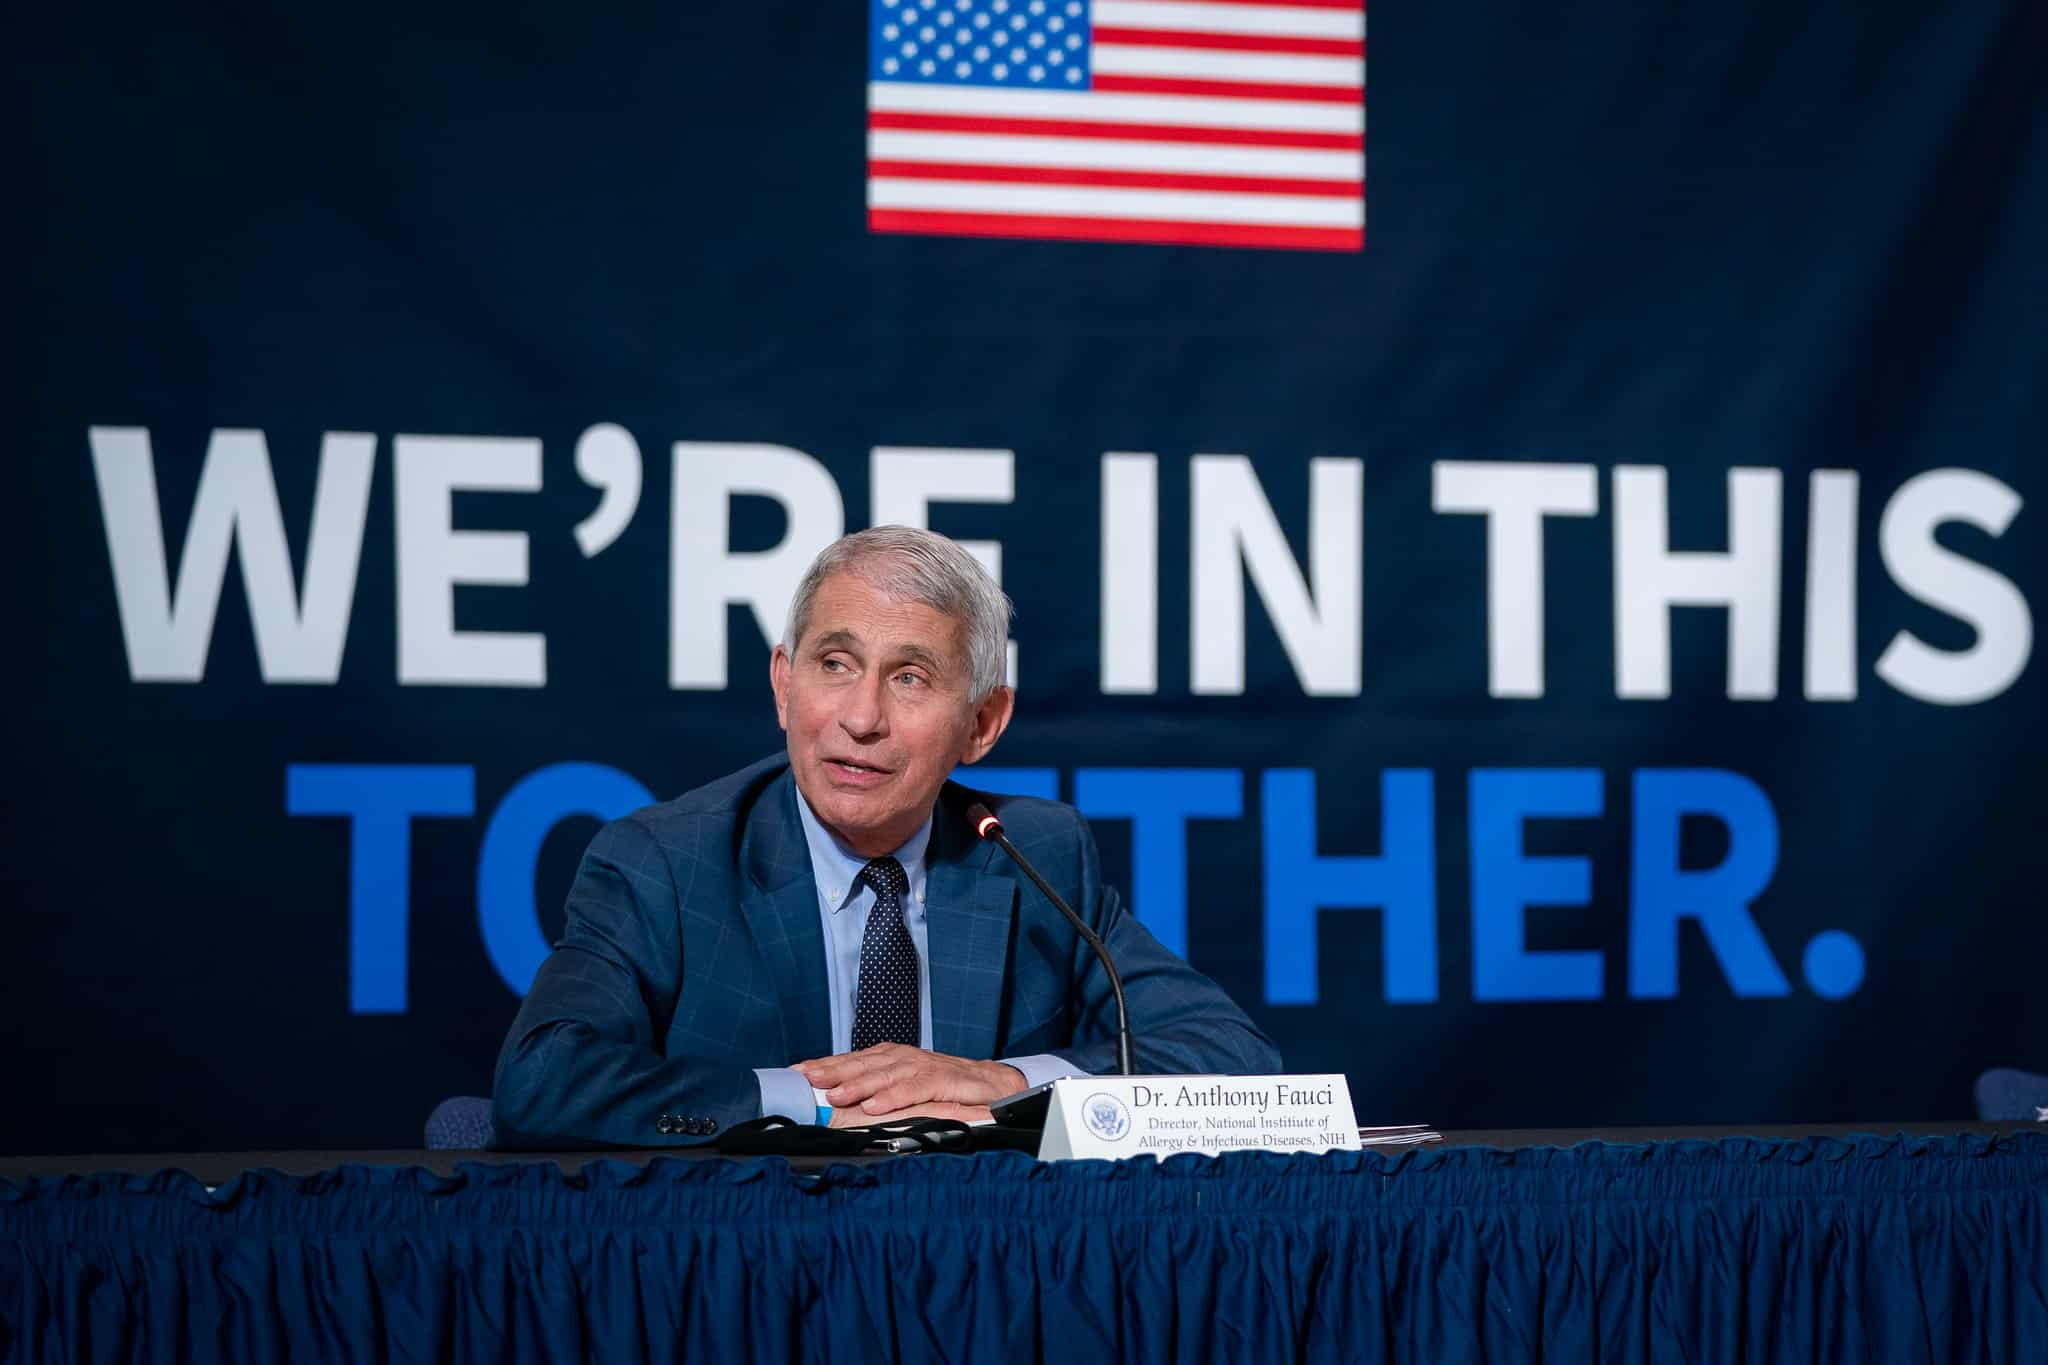 Removing the masking order but the epidemic in Texas plummeted, perplexed Dr. Fauci